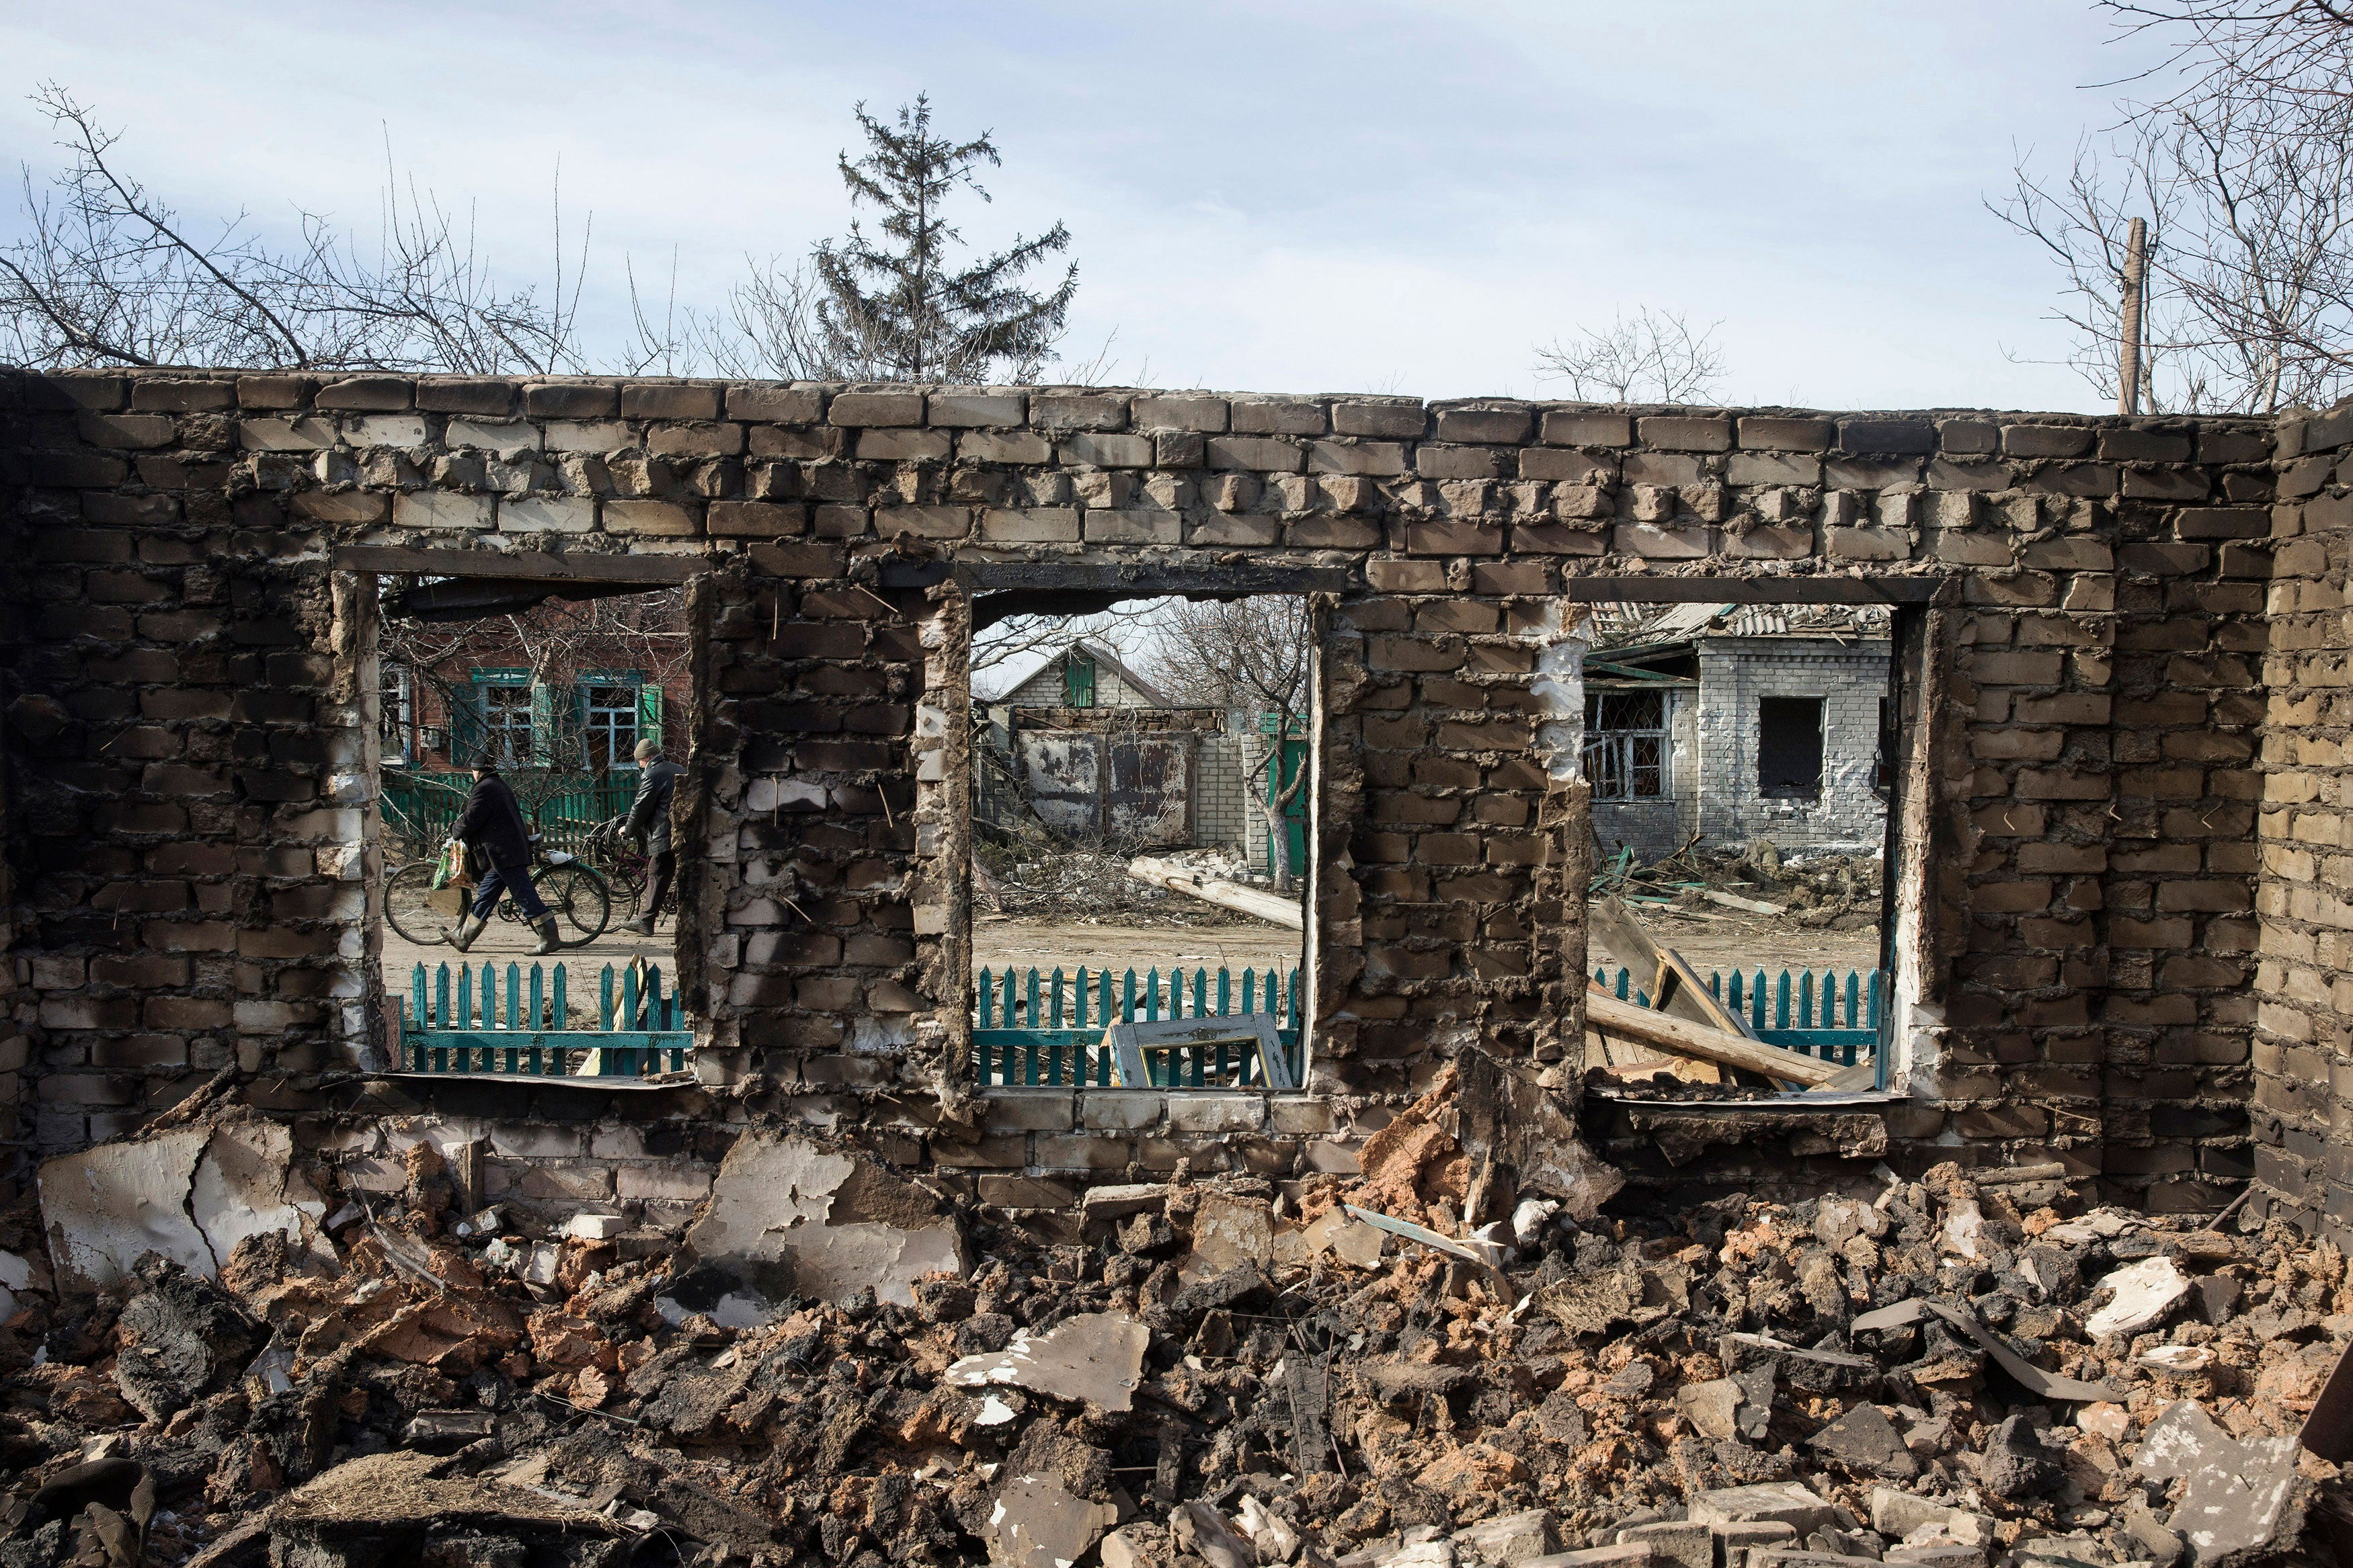 A house damaged by fighting in the town of Debaltseve, Ukraine, Feb. 25, 2015. (Photo: Baz Ratner/Reuters/Newscom)